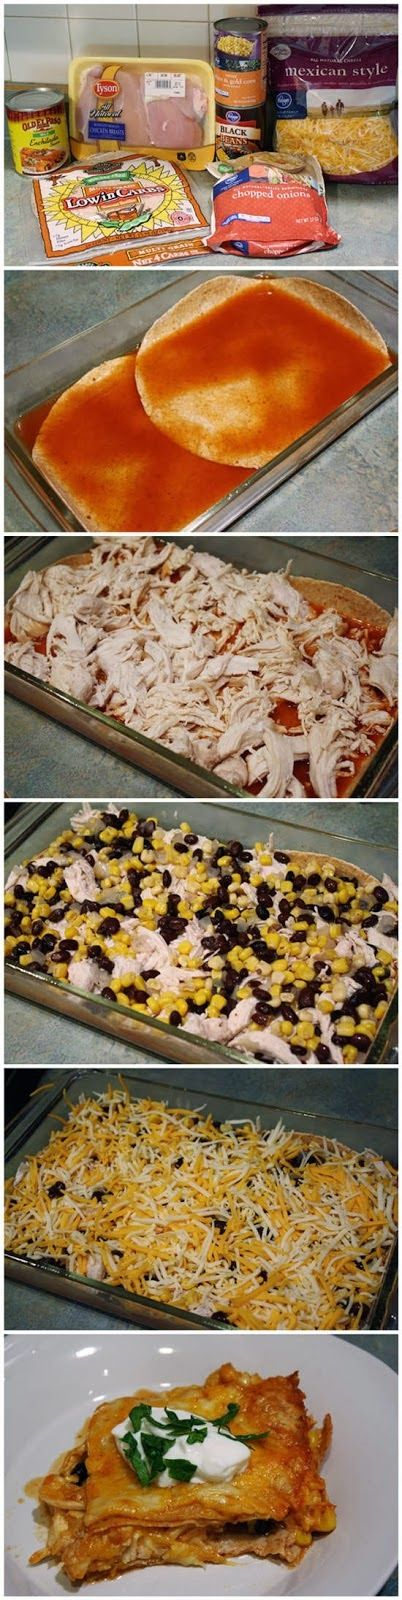 Skinny Chicken Enchilada Casserole - Muchtaste (success: used 1 lb ground chicken seasoned with taco seasoning, Mexican style corn)